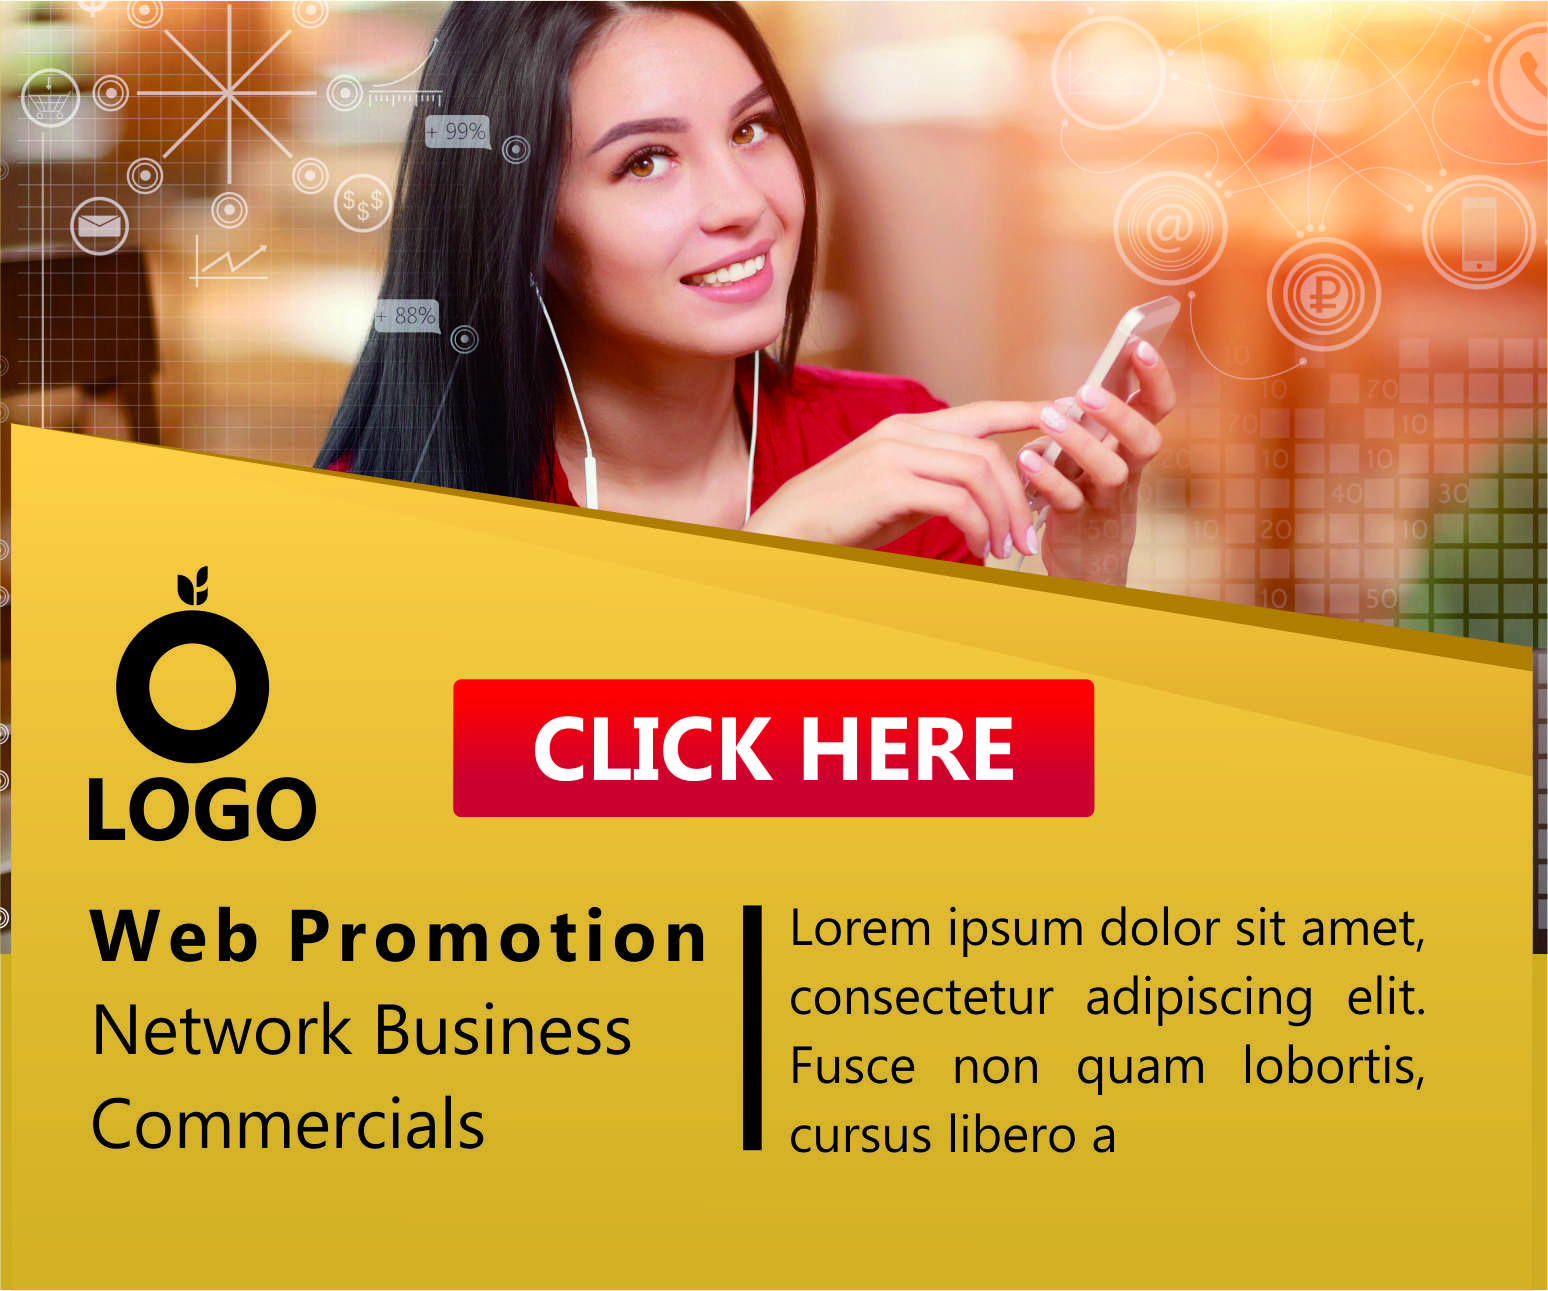 Profesional Design web banner,  header,  ad,  cover